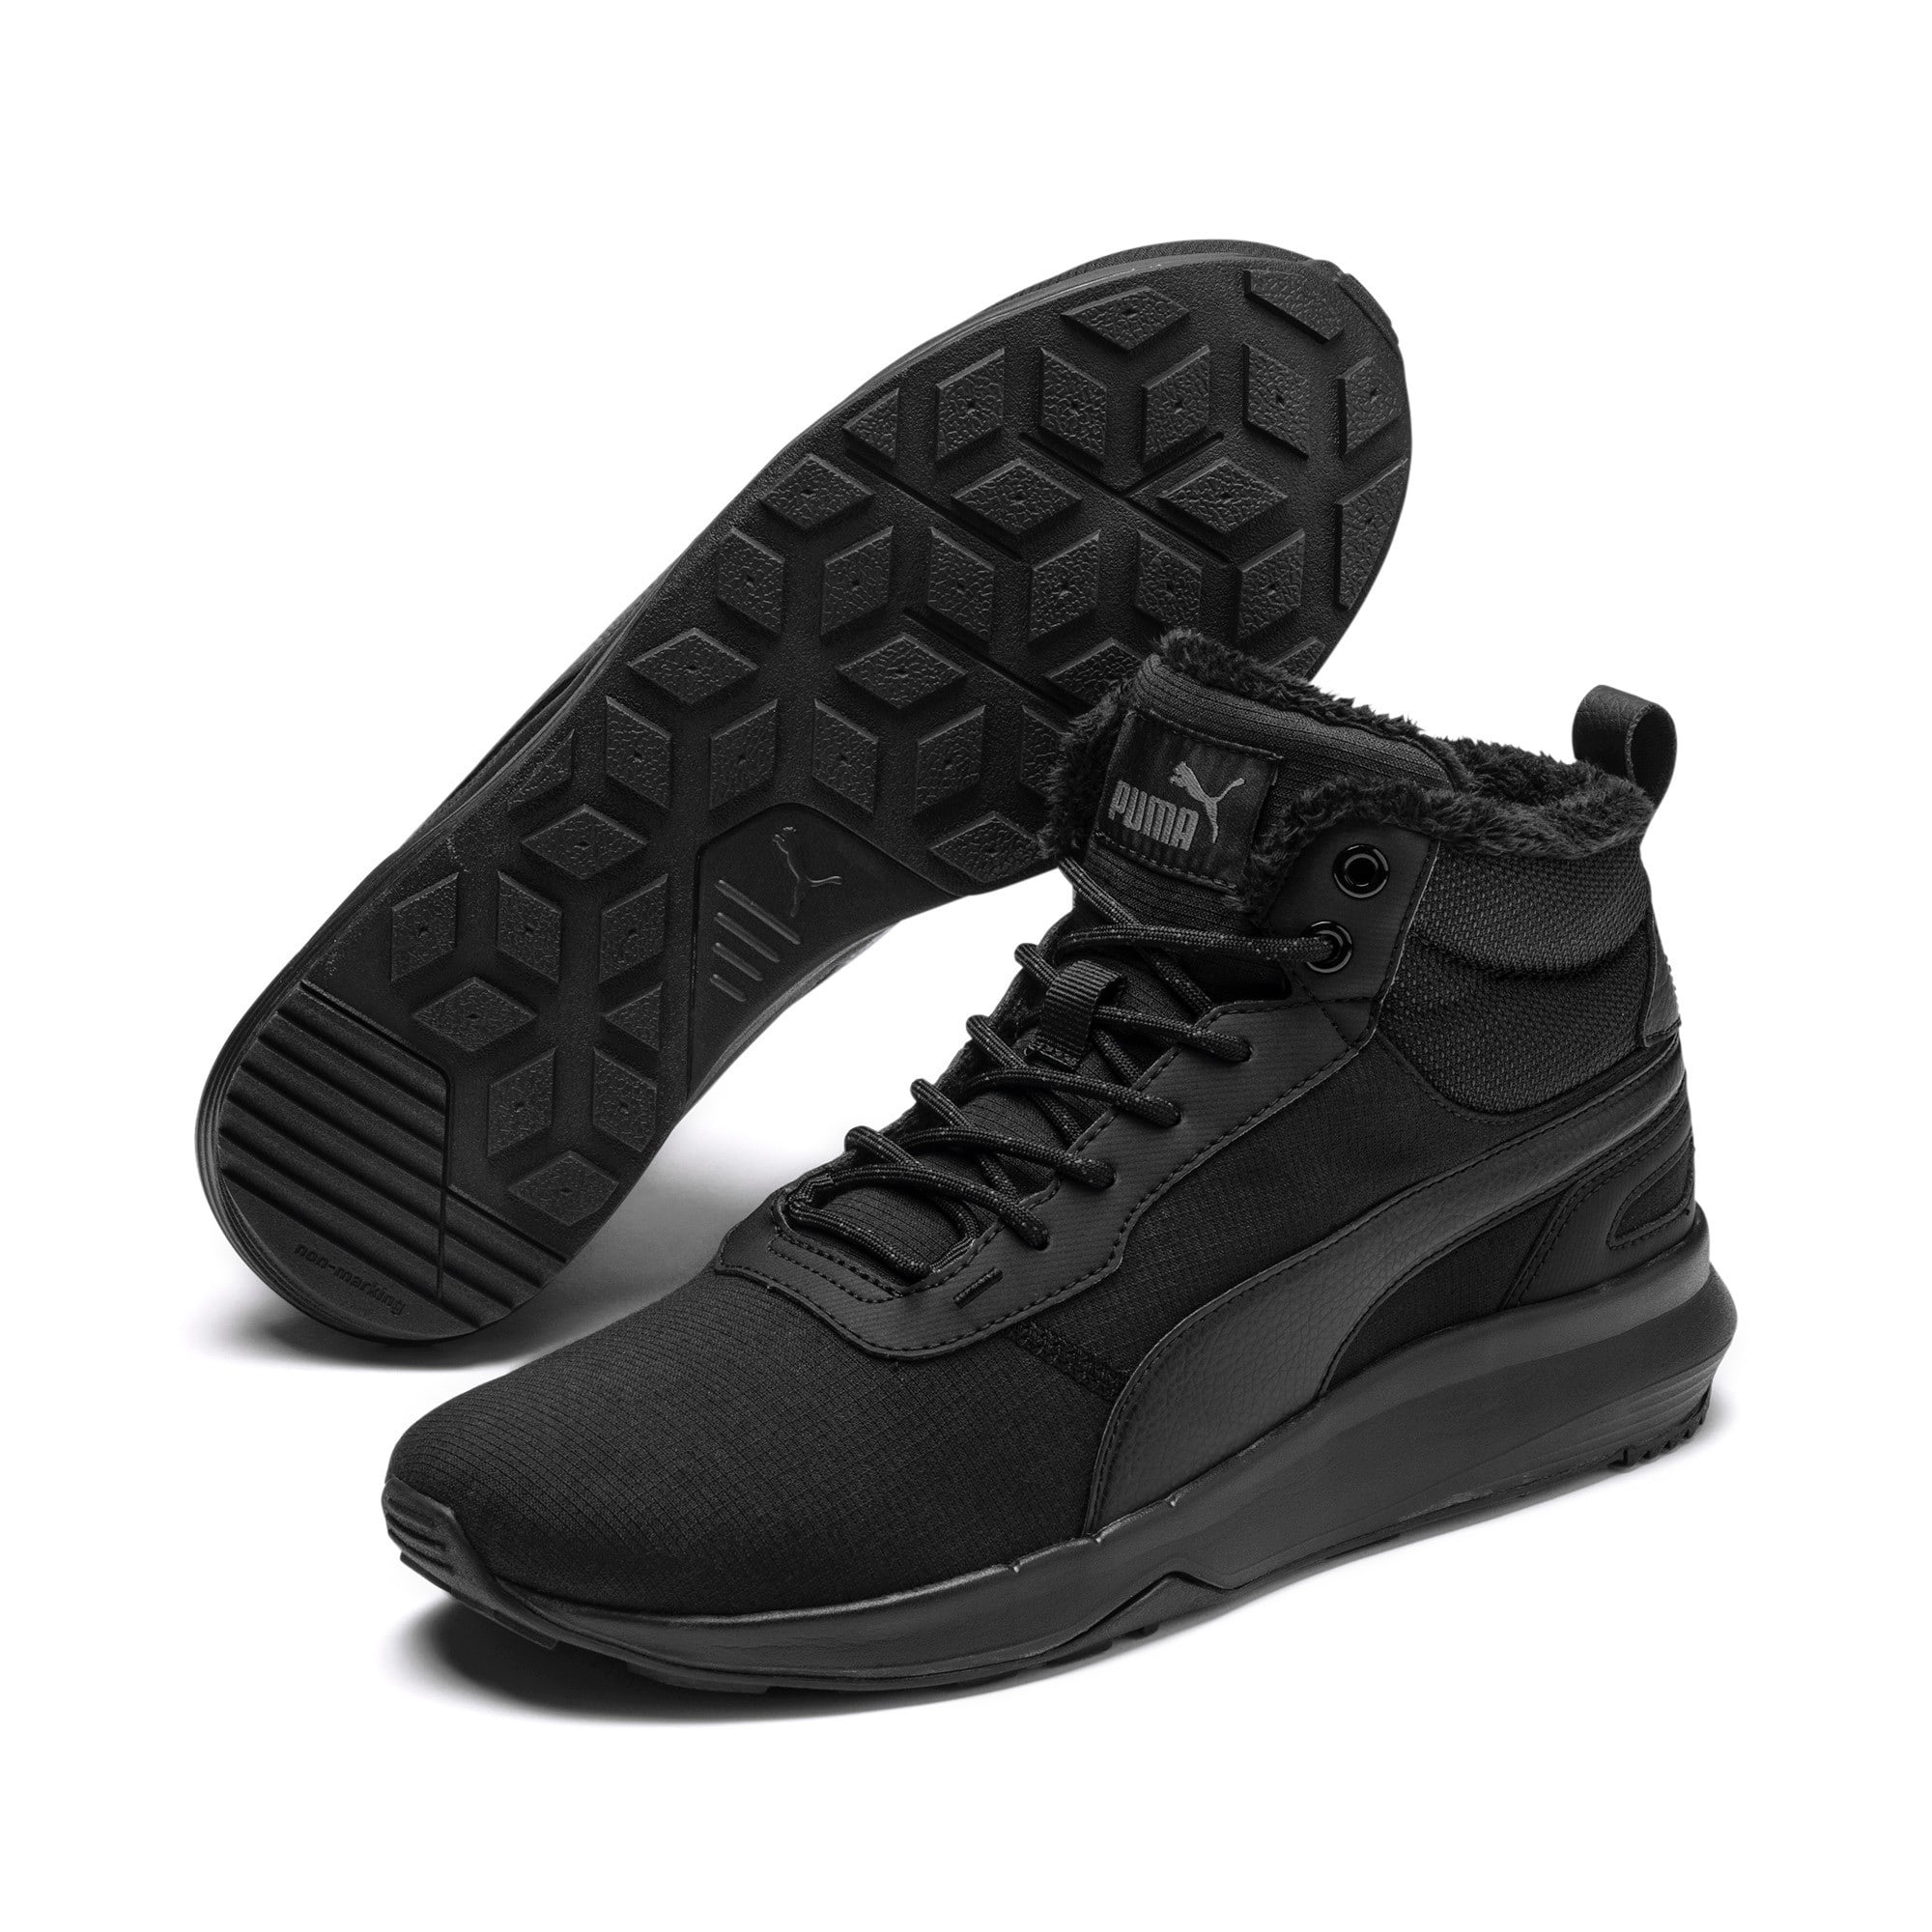 Thumbnail 3 of Activate Mid-Cut Boots, Puma Black-Puma Black, medium